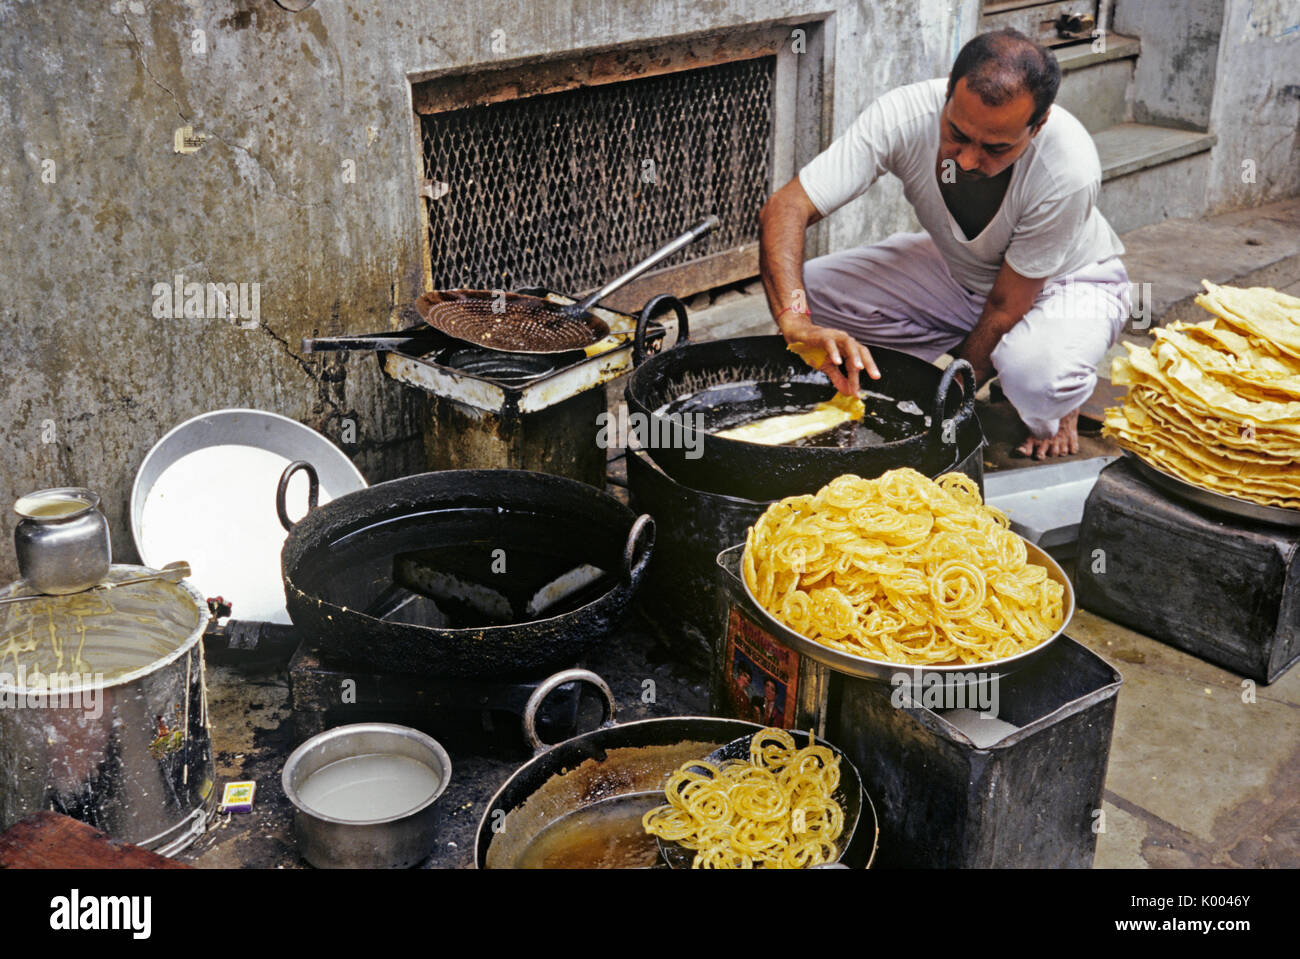 Man cooking and selling food on street, Ahmedabad, Gujarat, India - Stock Image